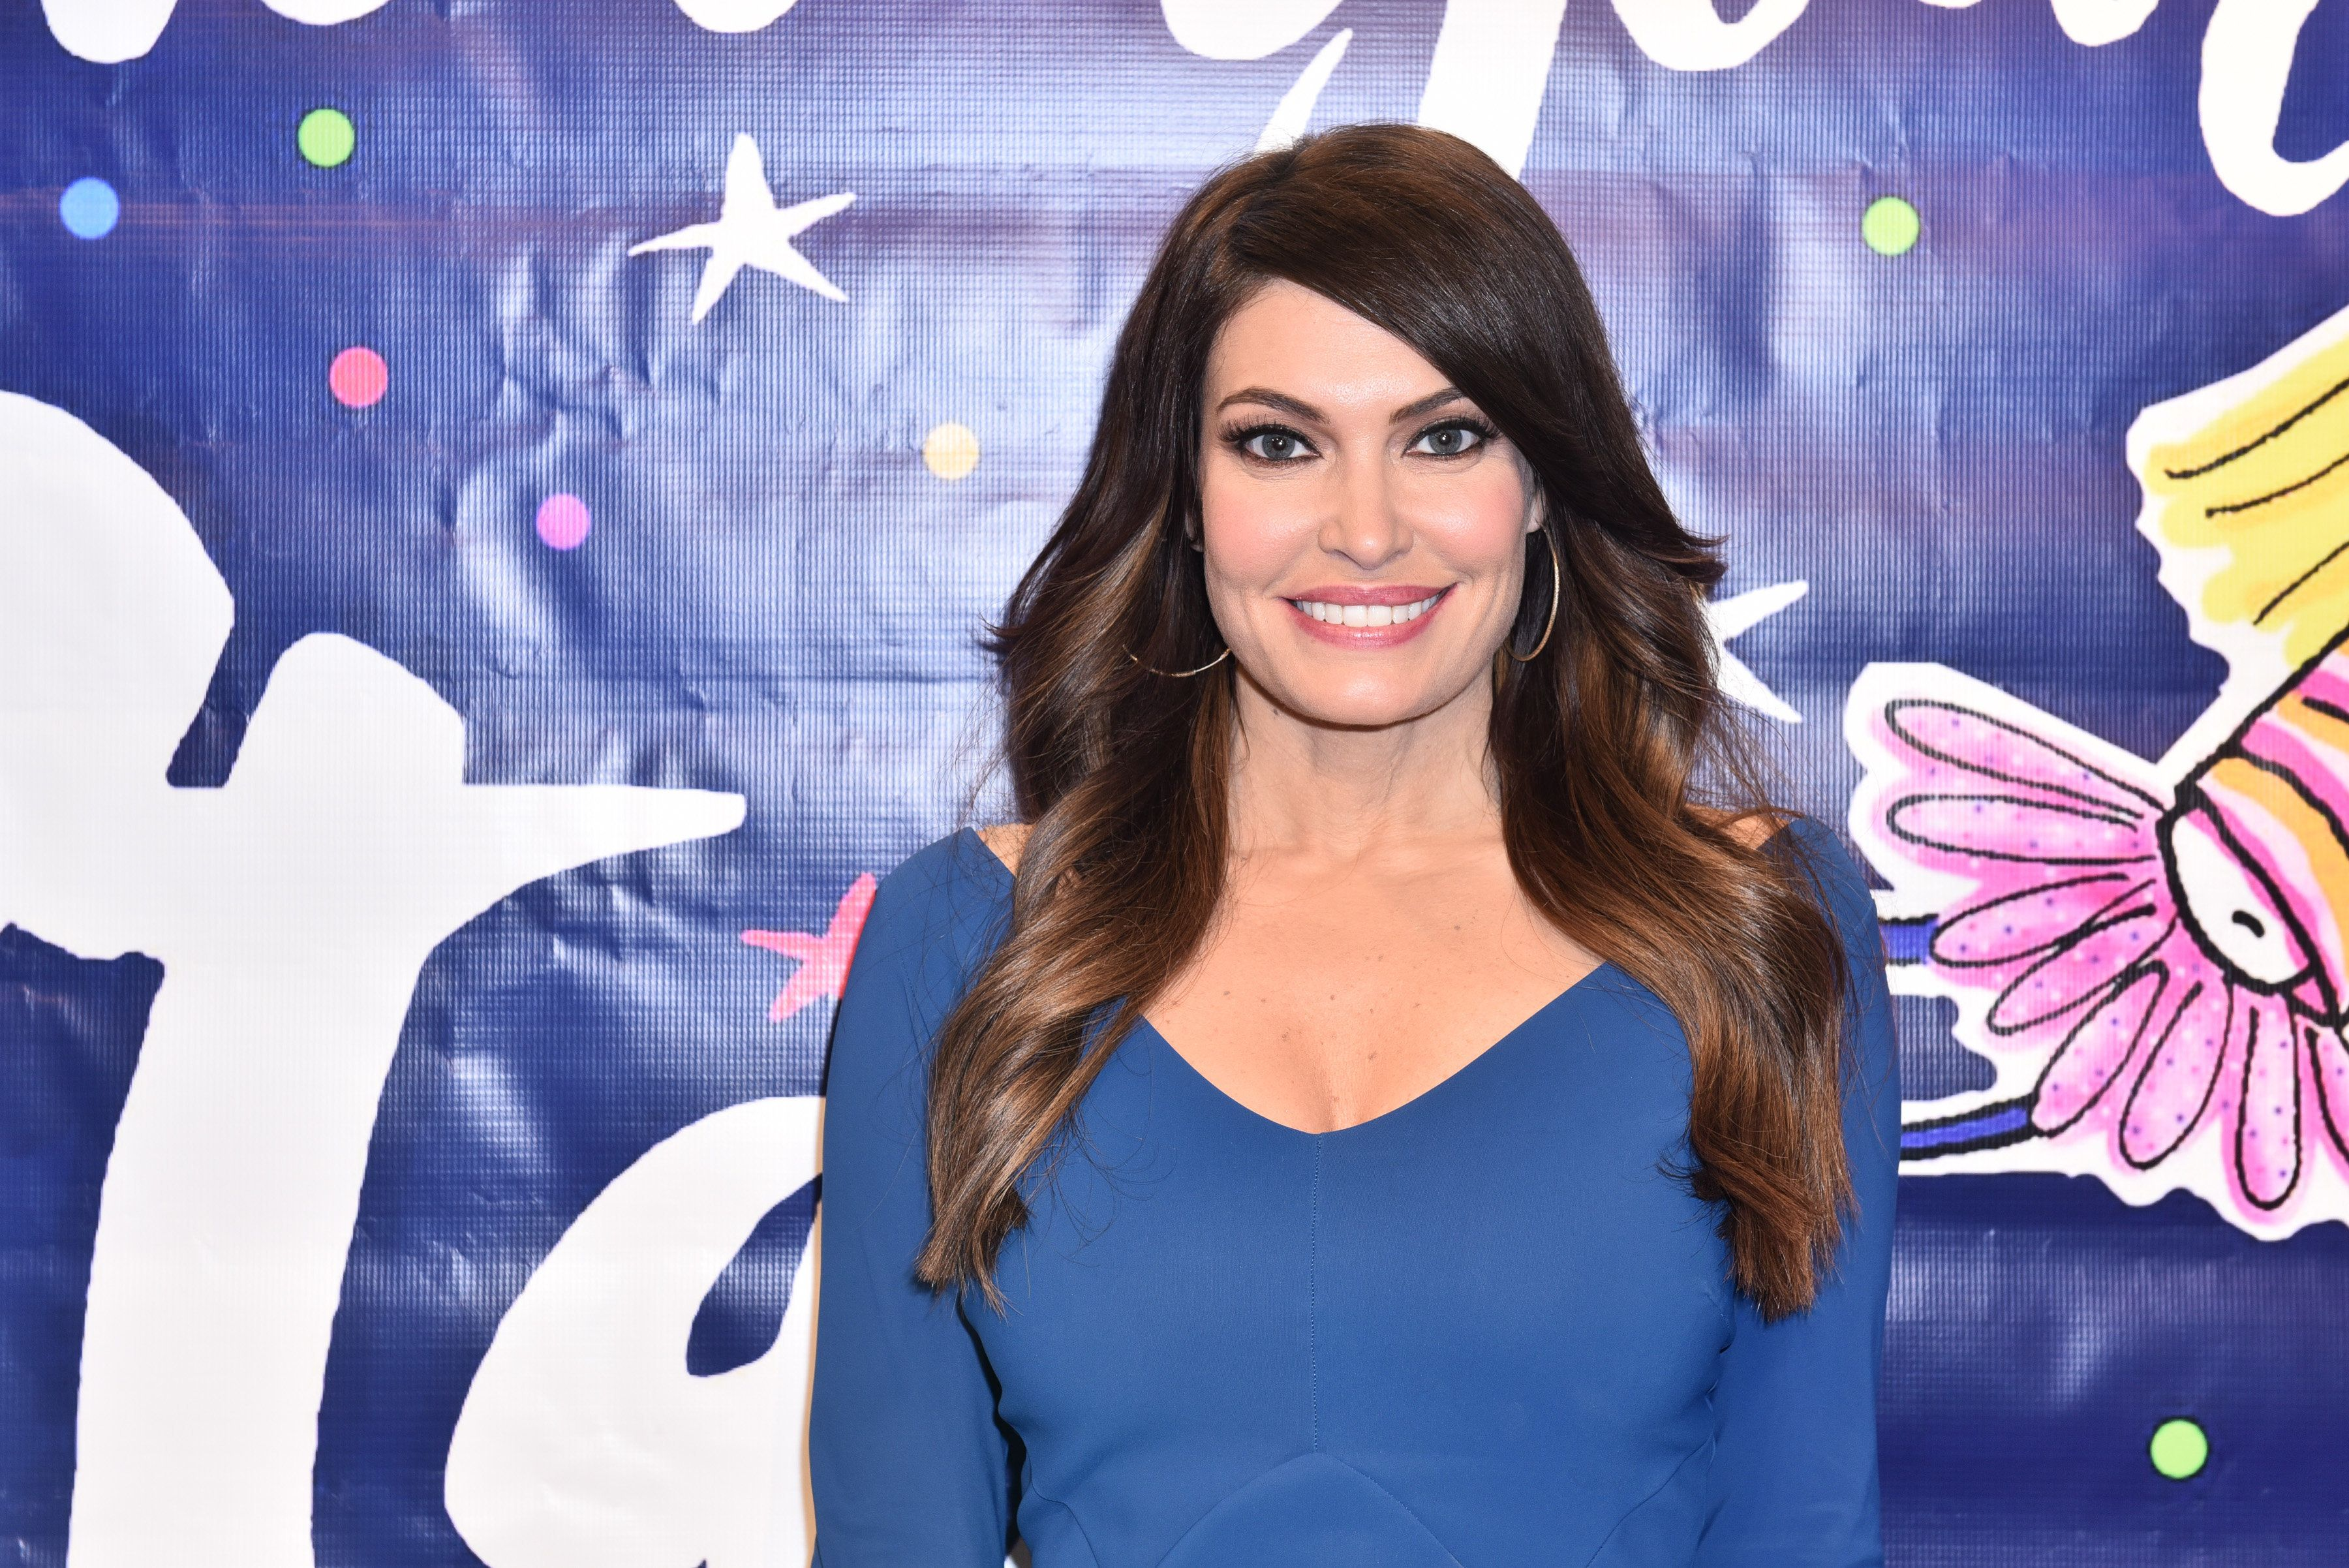 NEW YORK, NY - NOVEMBER 30:  Kimberly Guilfoyle attends 'Follow Your Star' Book Launch at 800 B Fifth Avenue on November 30, 2017 in New York City.  (Photo by Jared Siskin/Patrick McMullan via Getty Images)